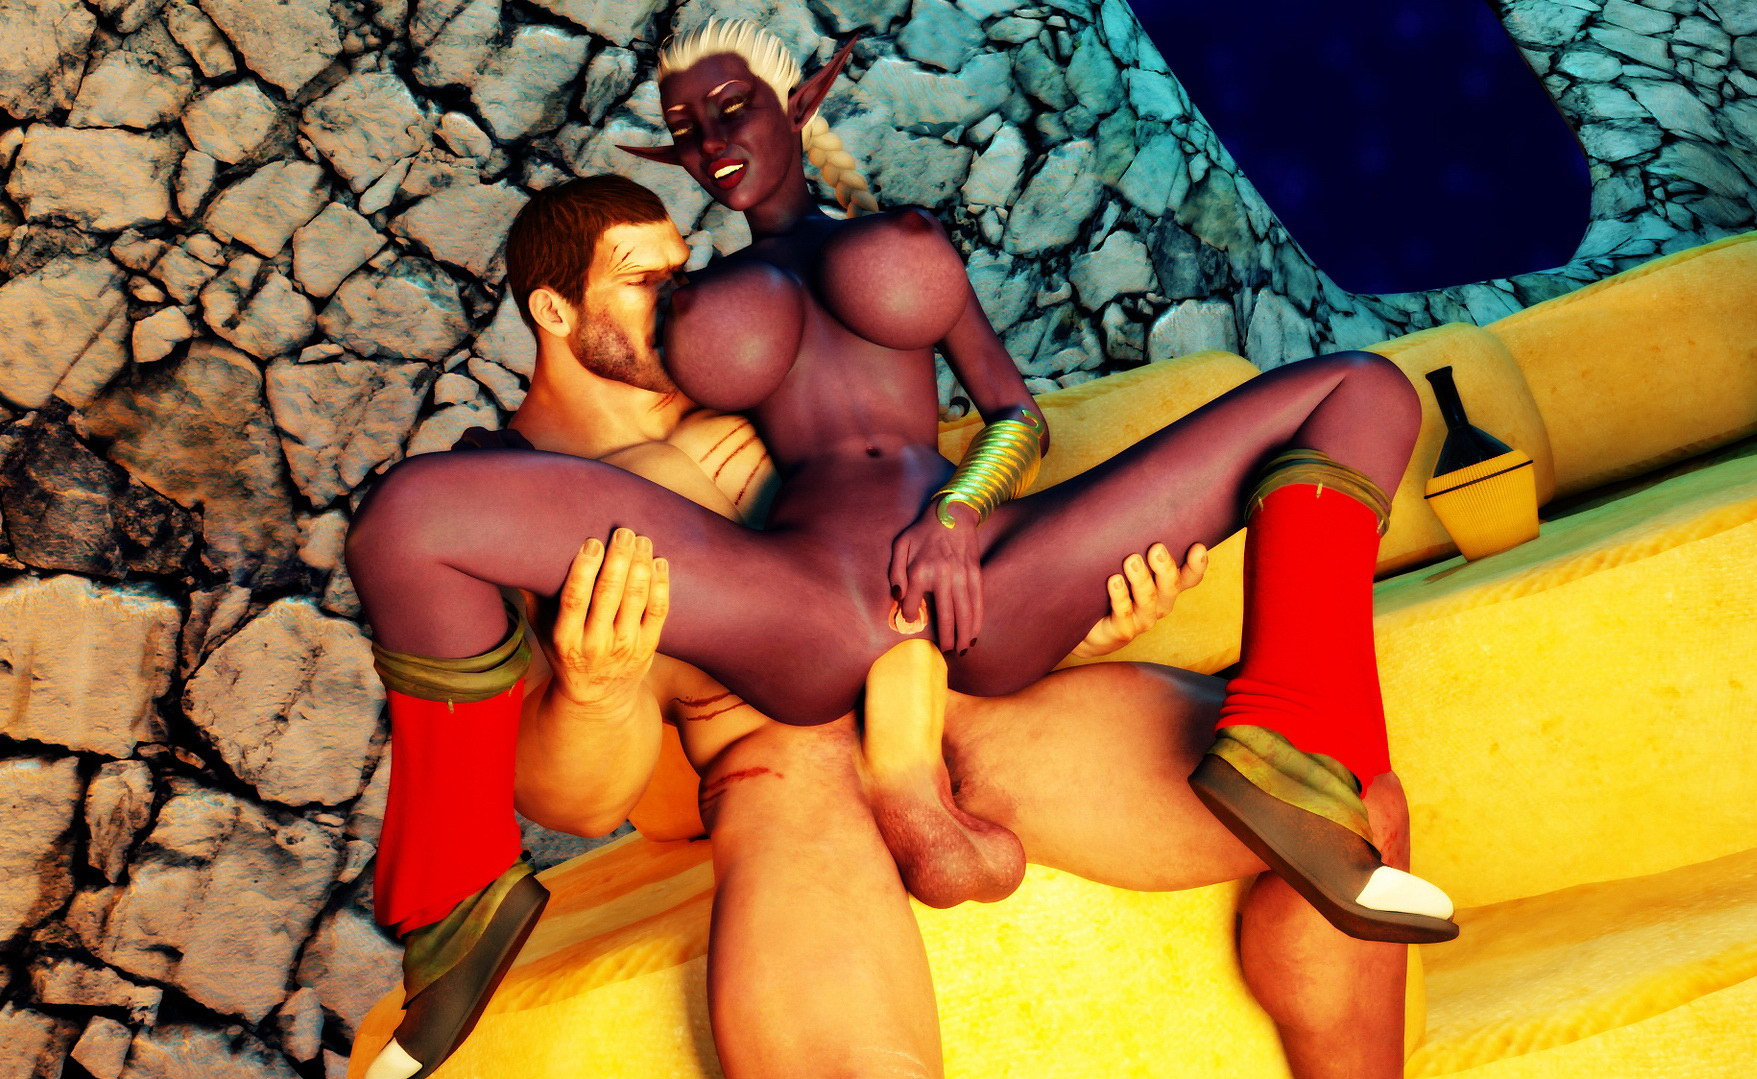 Free sex mmorpg games fucks videos